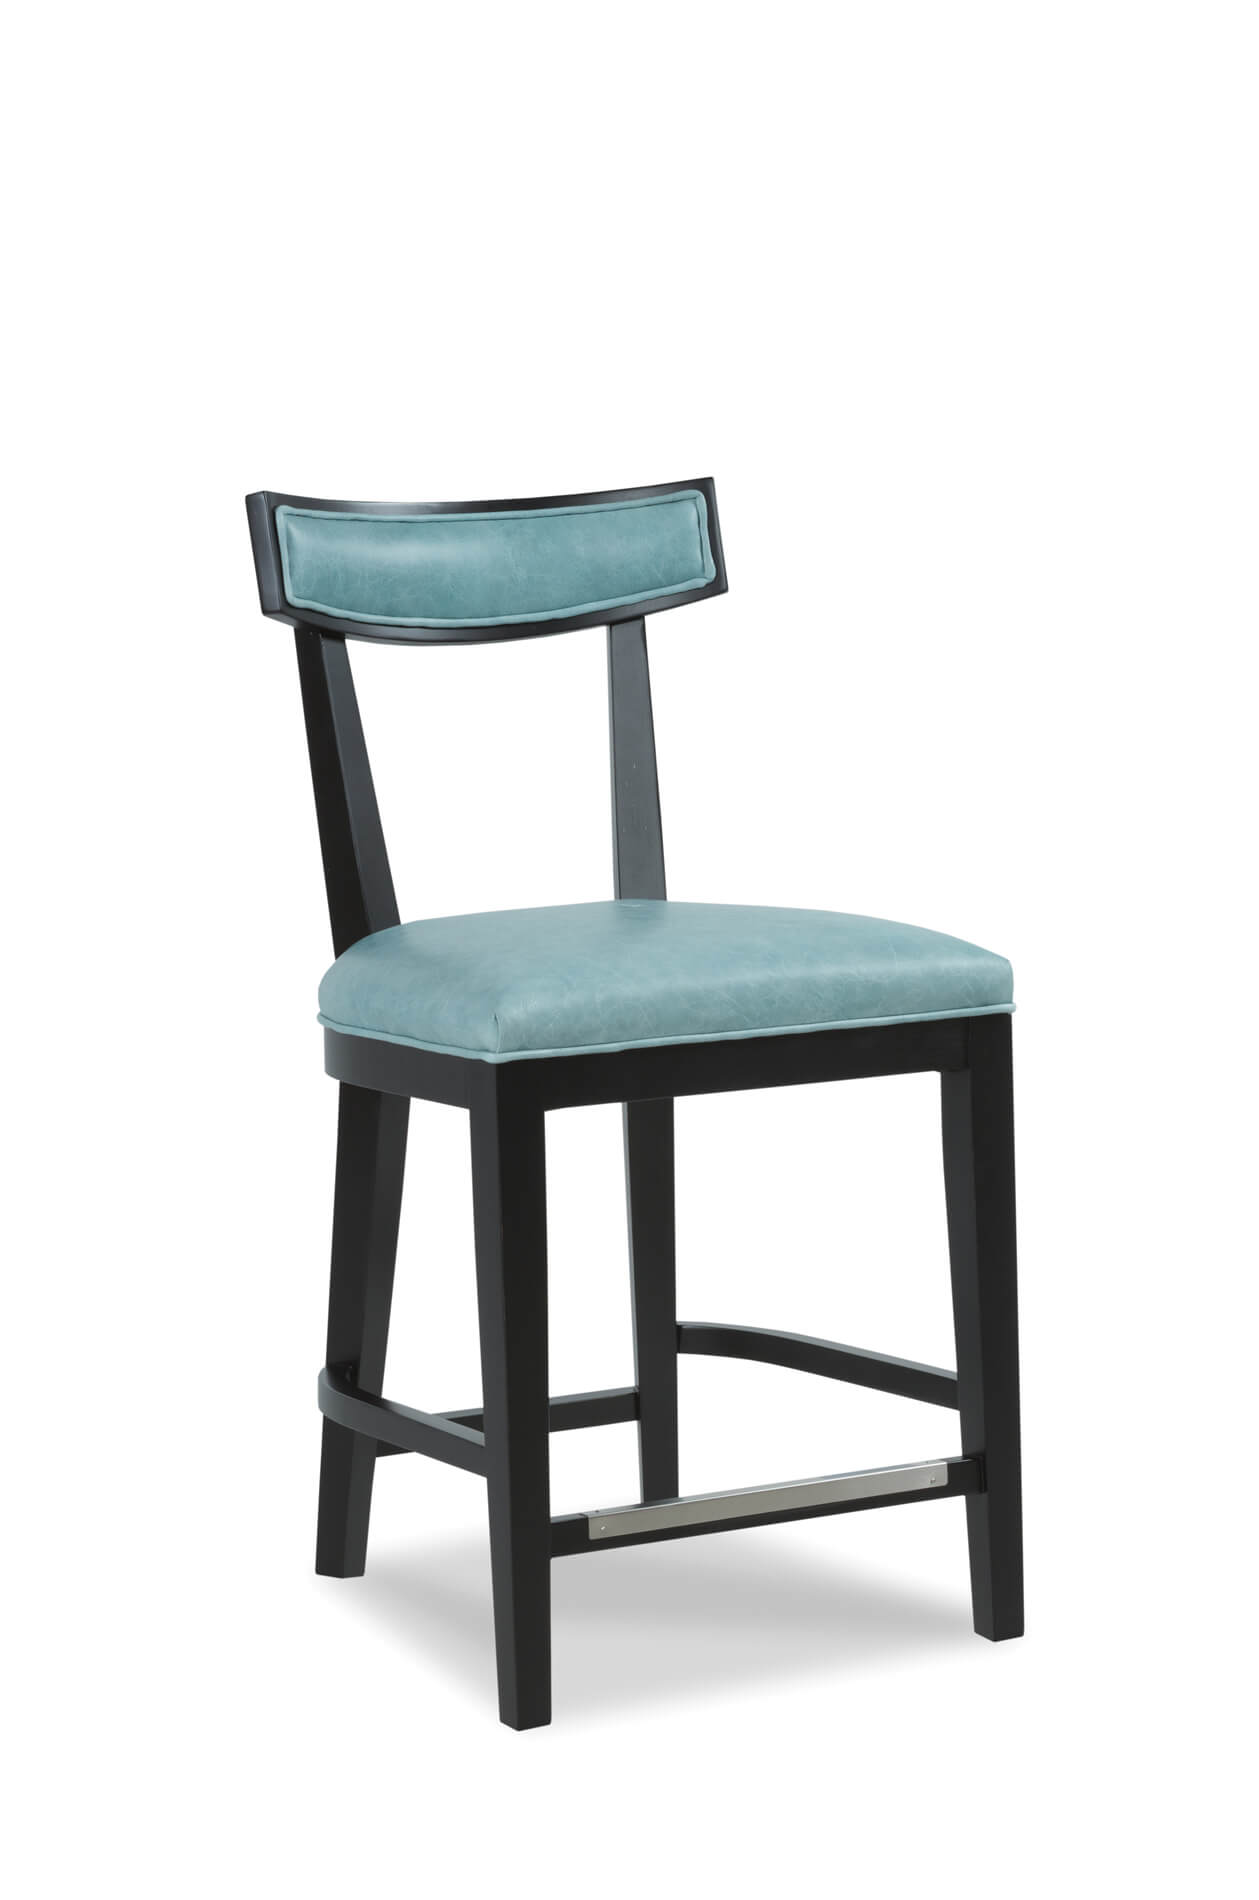 Enjoyable Douglas Upholstered Wooden Stool With Back Theyellowbook Wood Chair Design Ideas Theyellowbookinfo